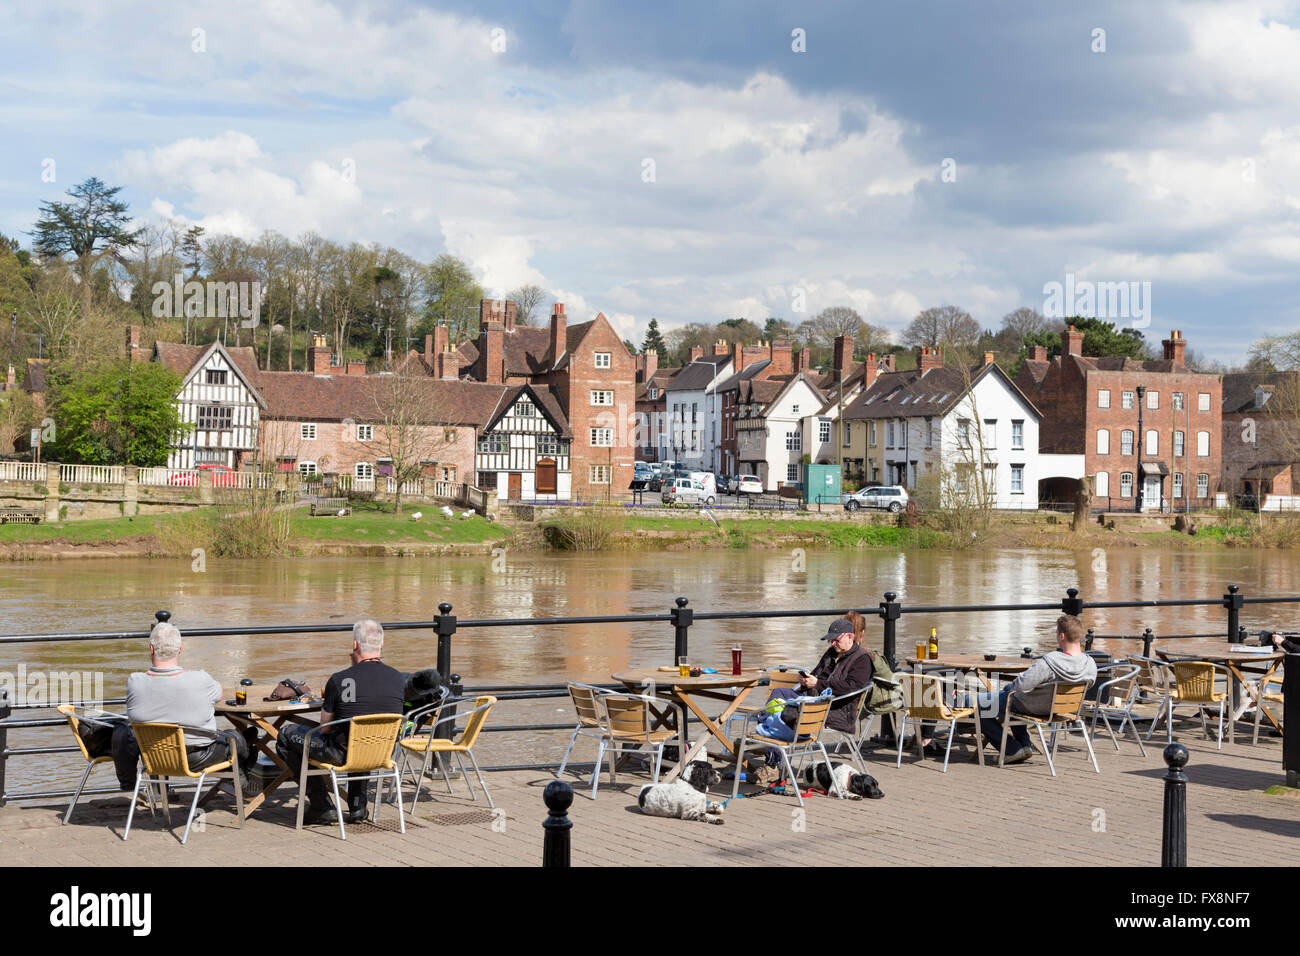 Relaxing by the River Severn in the riverside town of Bewdley, Worcestershire, England, UK - Stock Image